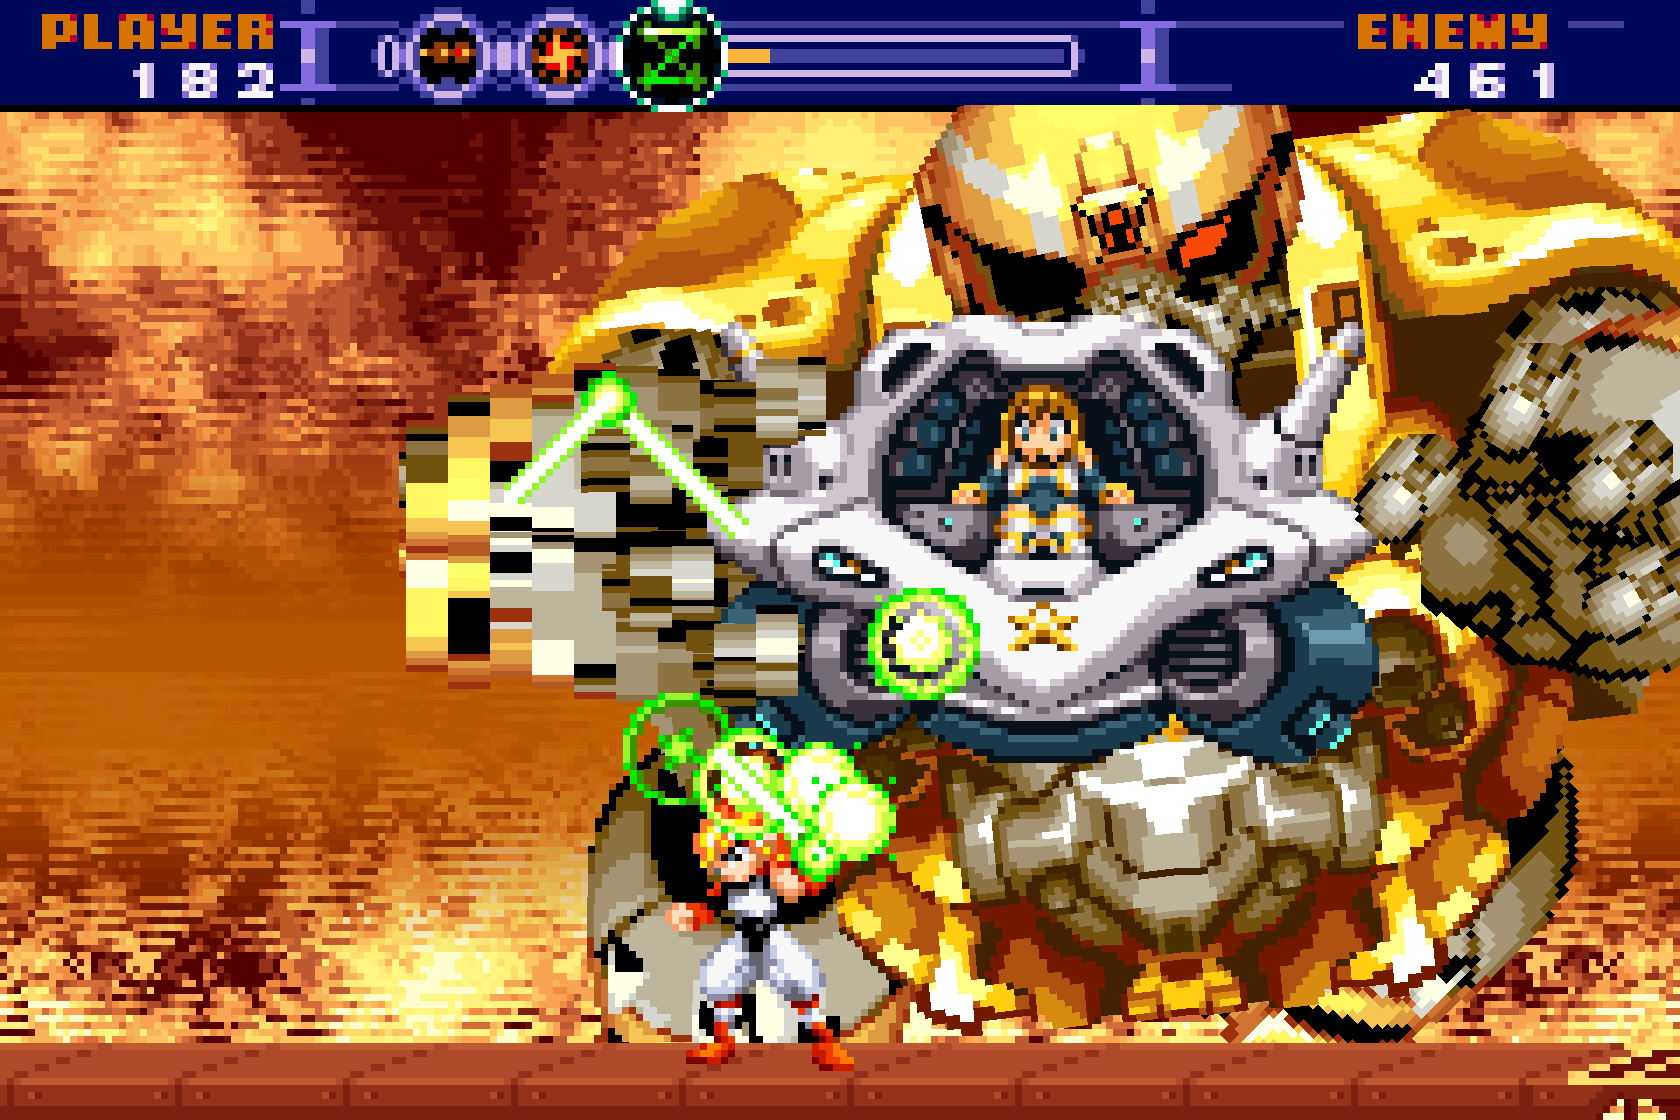 Gunstar Super Heroes uses rotated and mosaic sprites